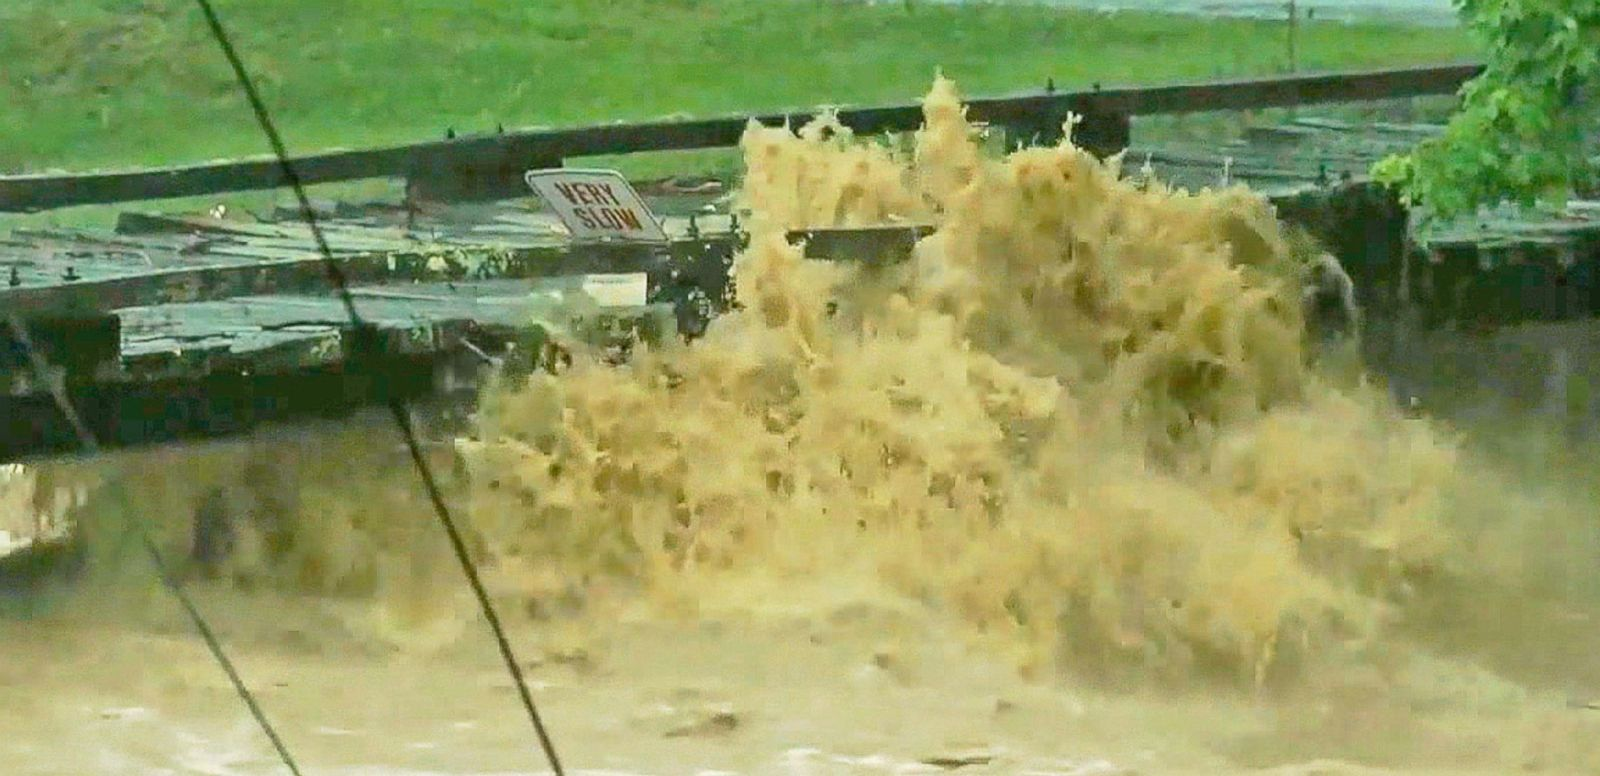 VIDEO: West Virginia Residents Battle Severe Flooding